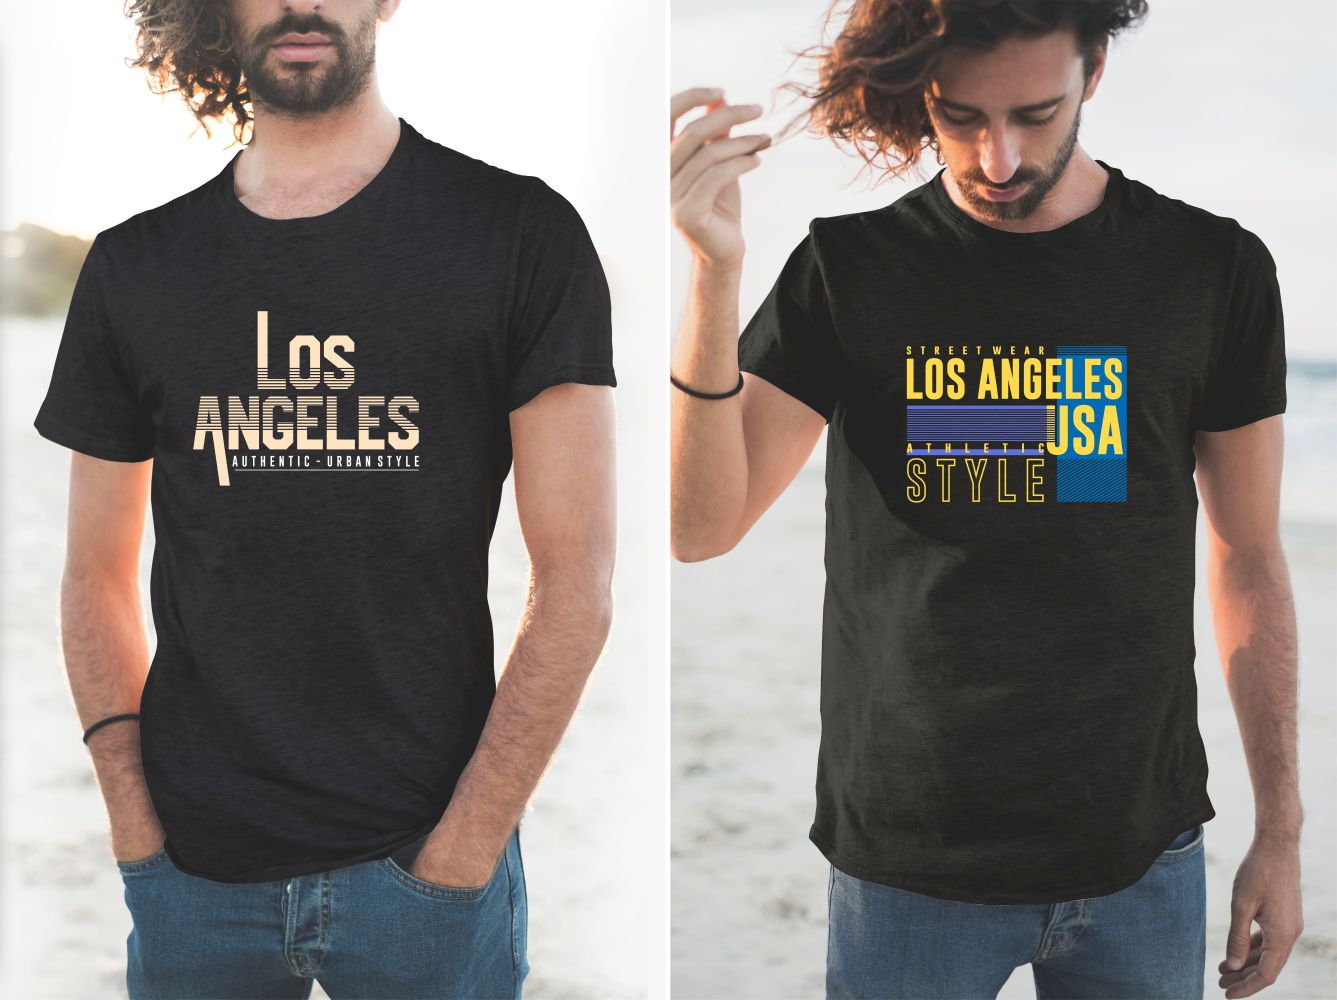 The two black T-shirts have various versions of the LA lettering.